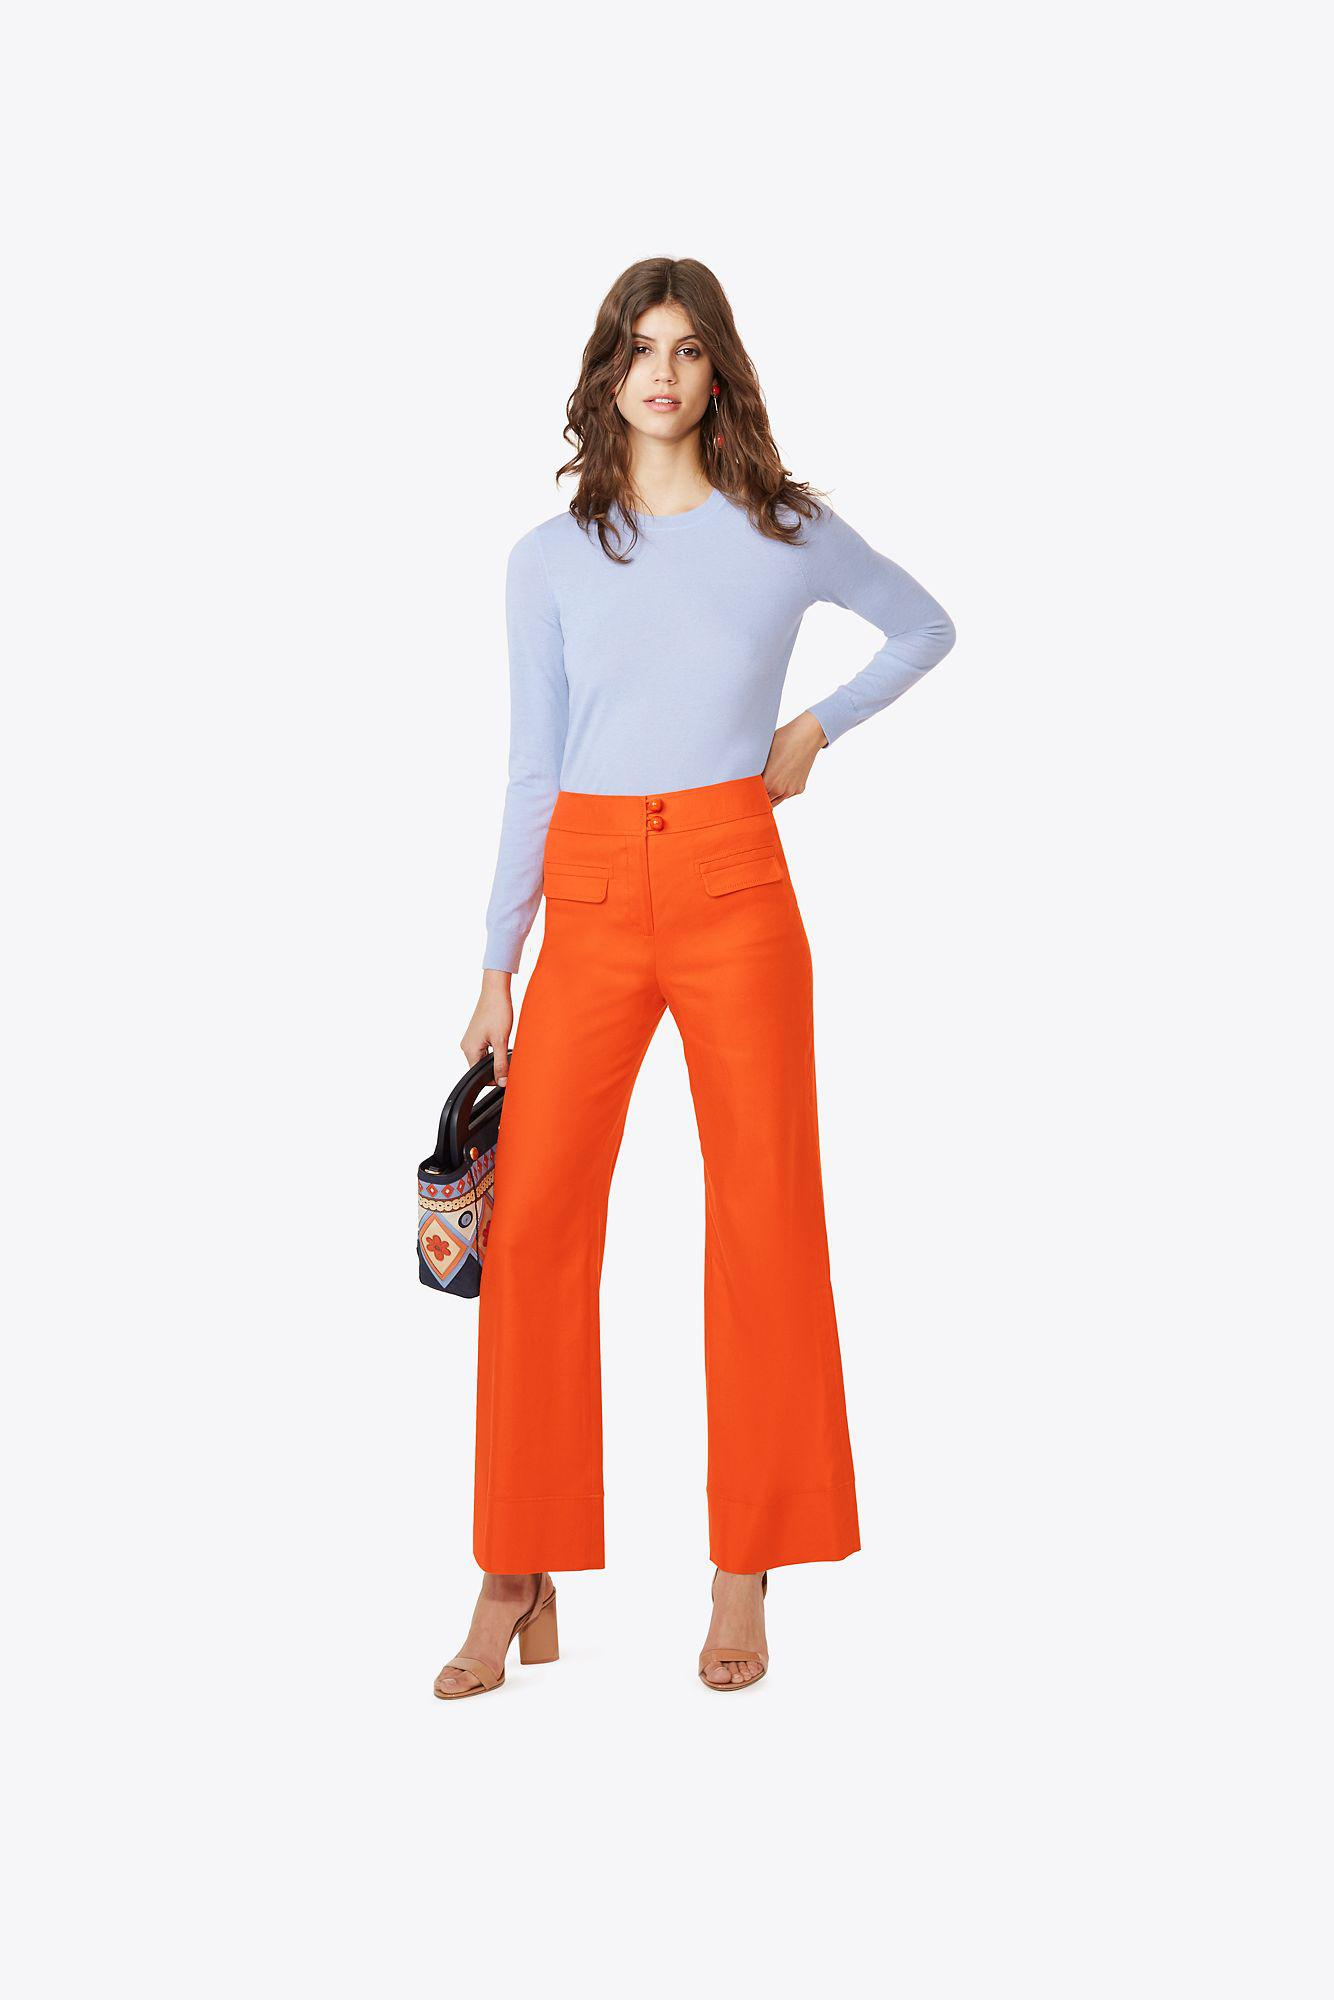 Lyst tory burch iberia cashmere sweater in blue for Tory burch fashion island